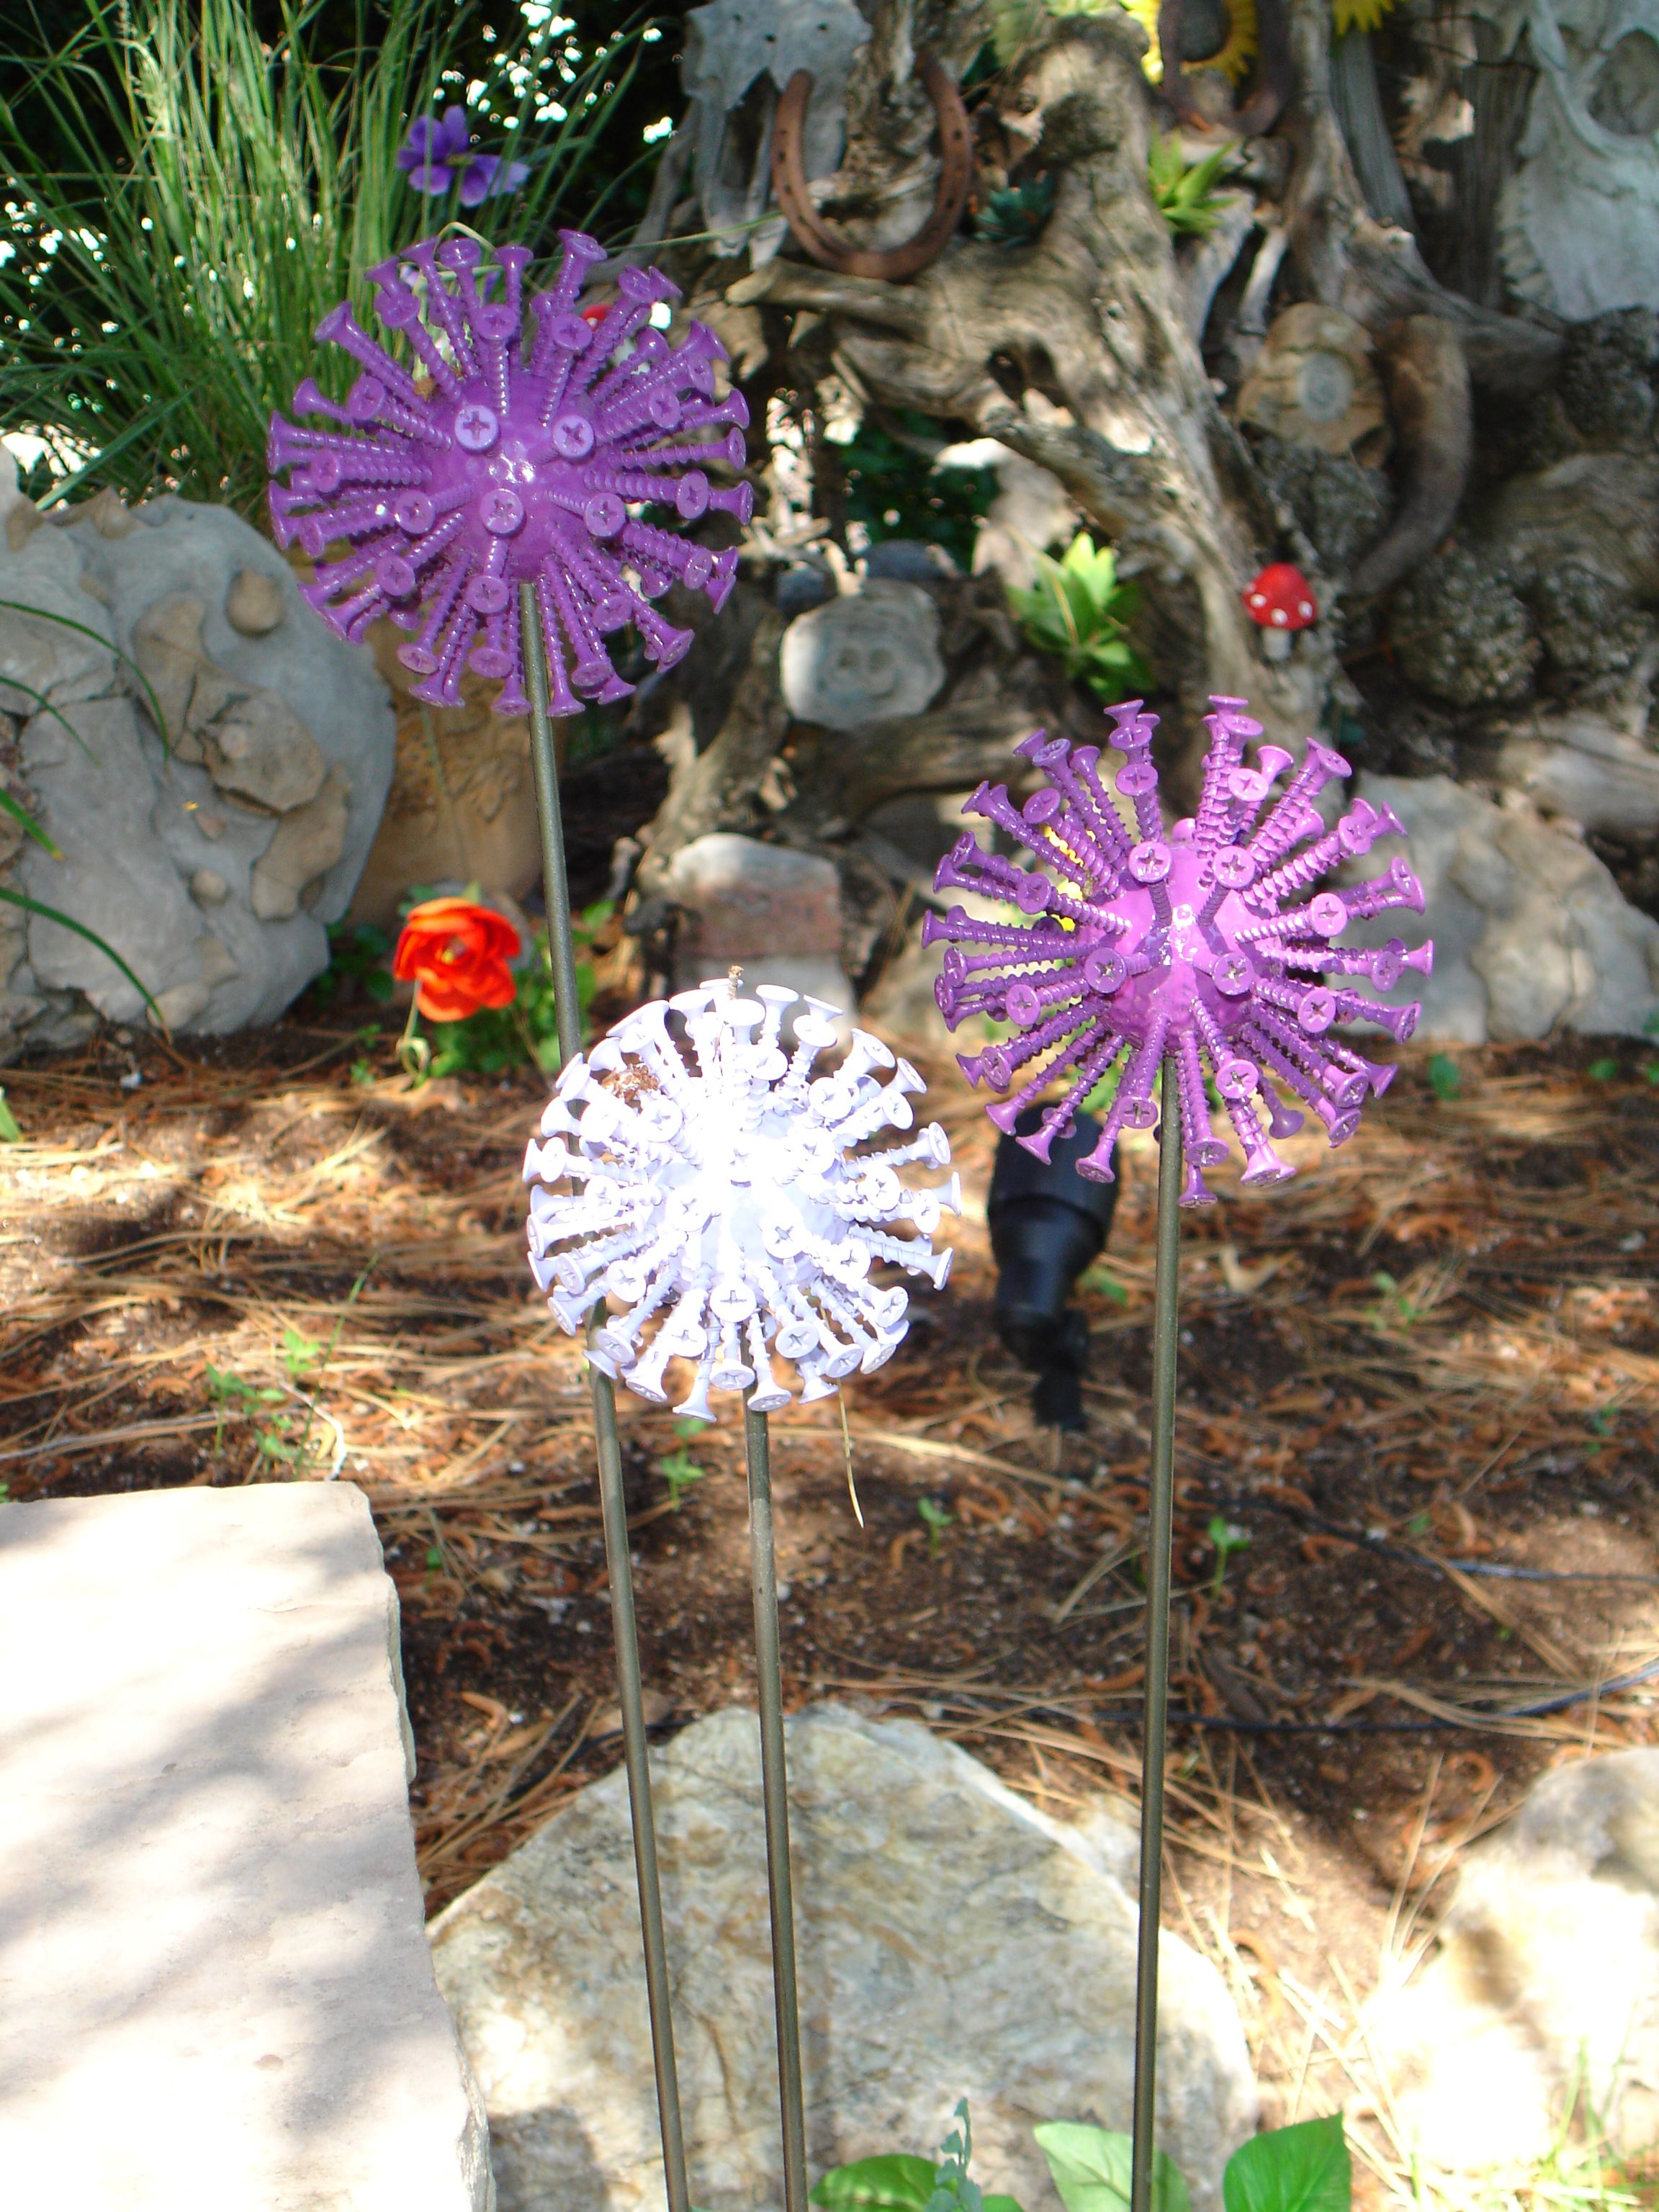 How To Make Glass Yard Art - Find this pin and more on garden art 2015